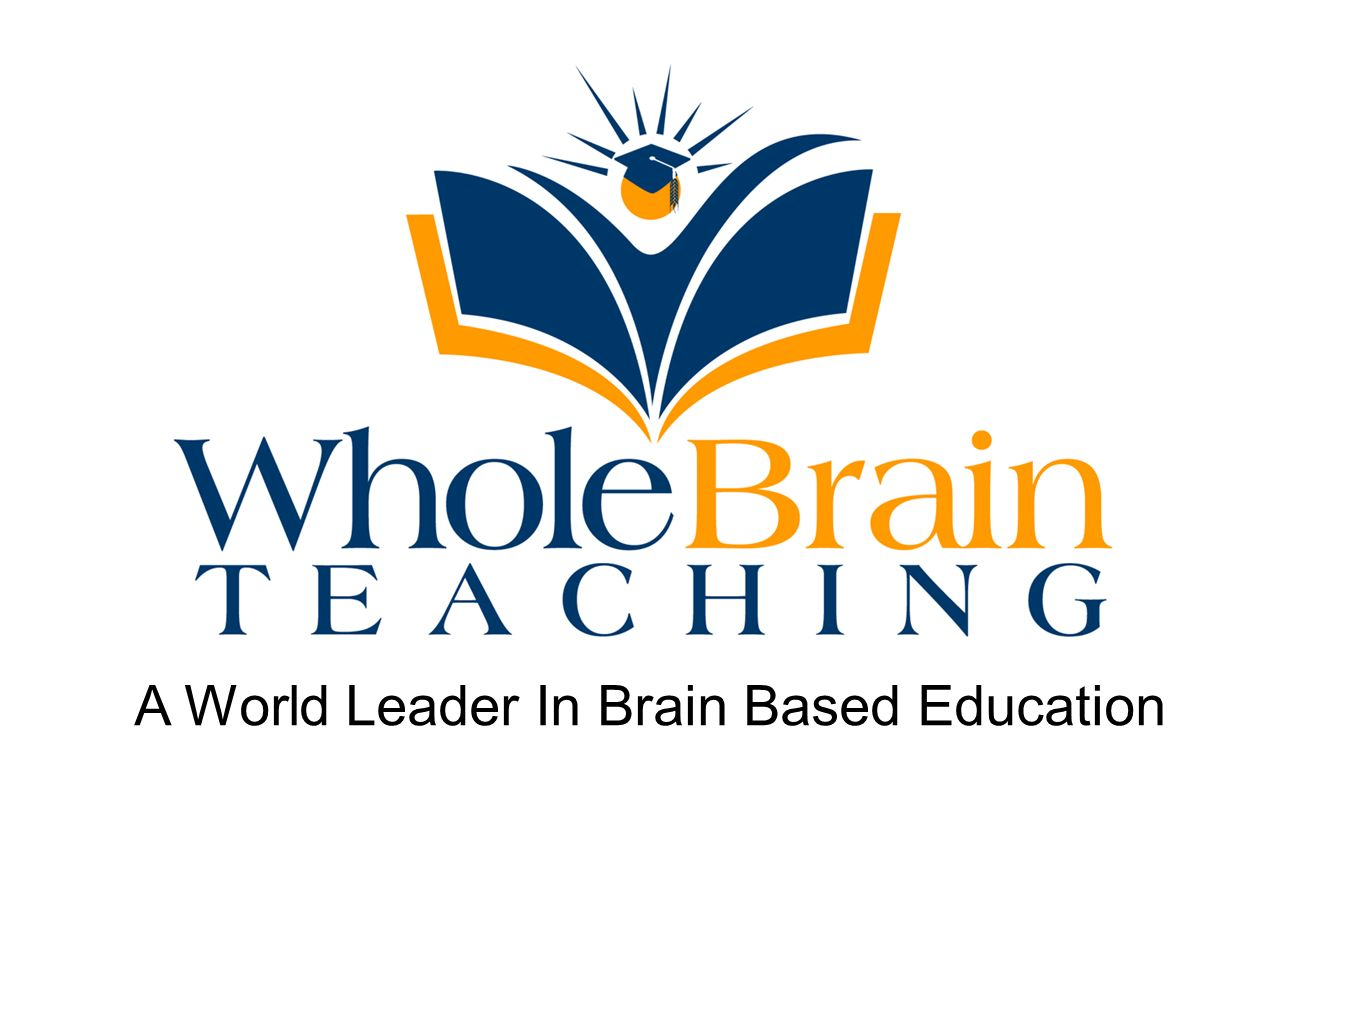 A World Leader In Brain Based Education